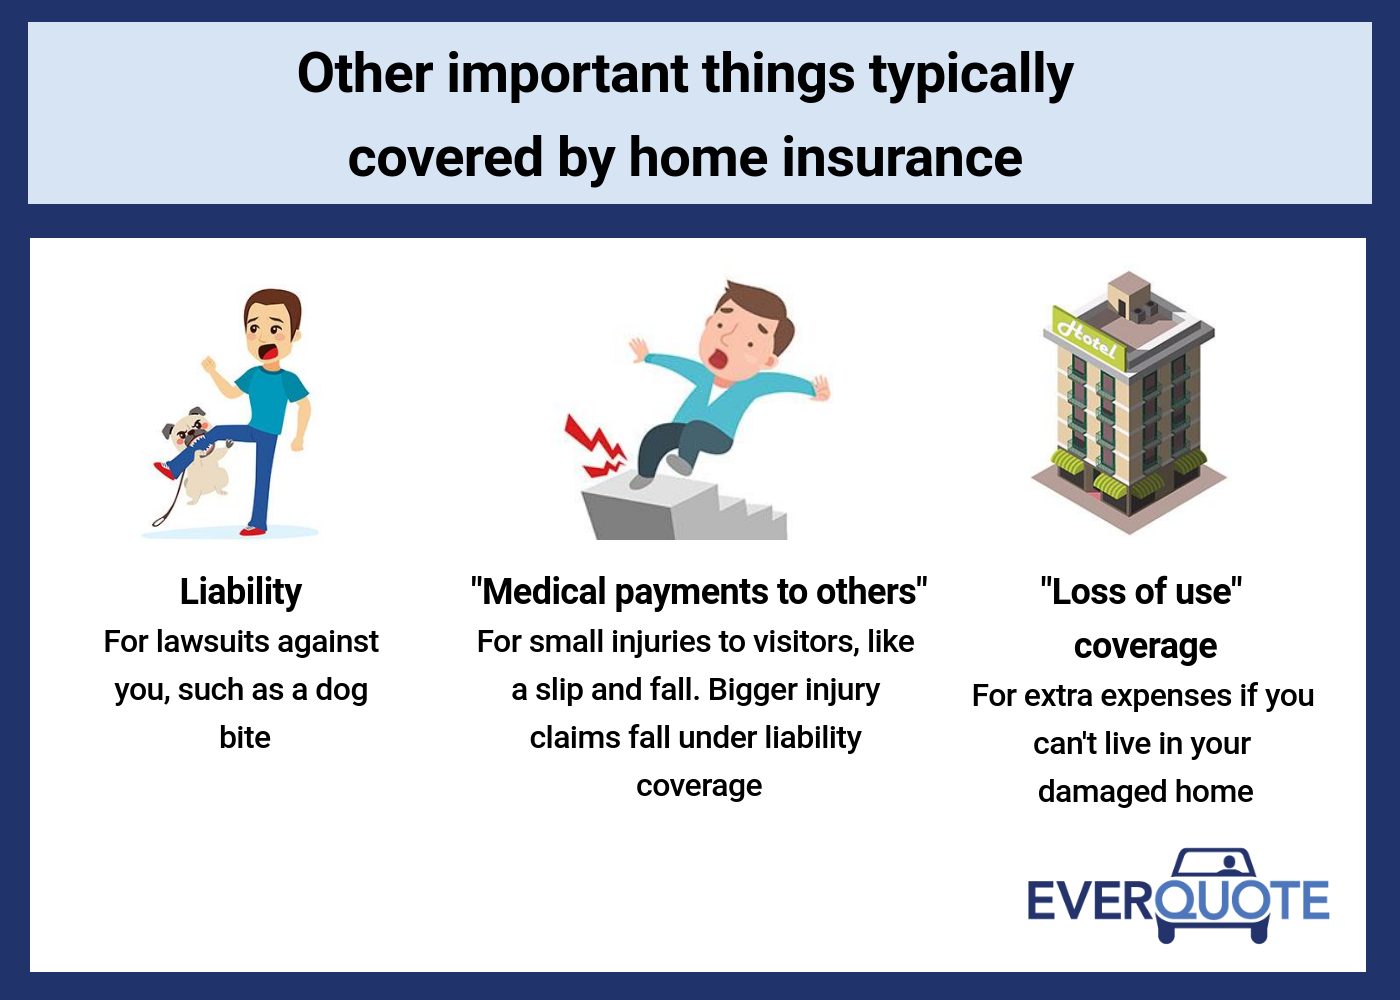 Other important things typically covered by home insurance